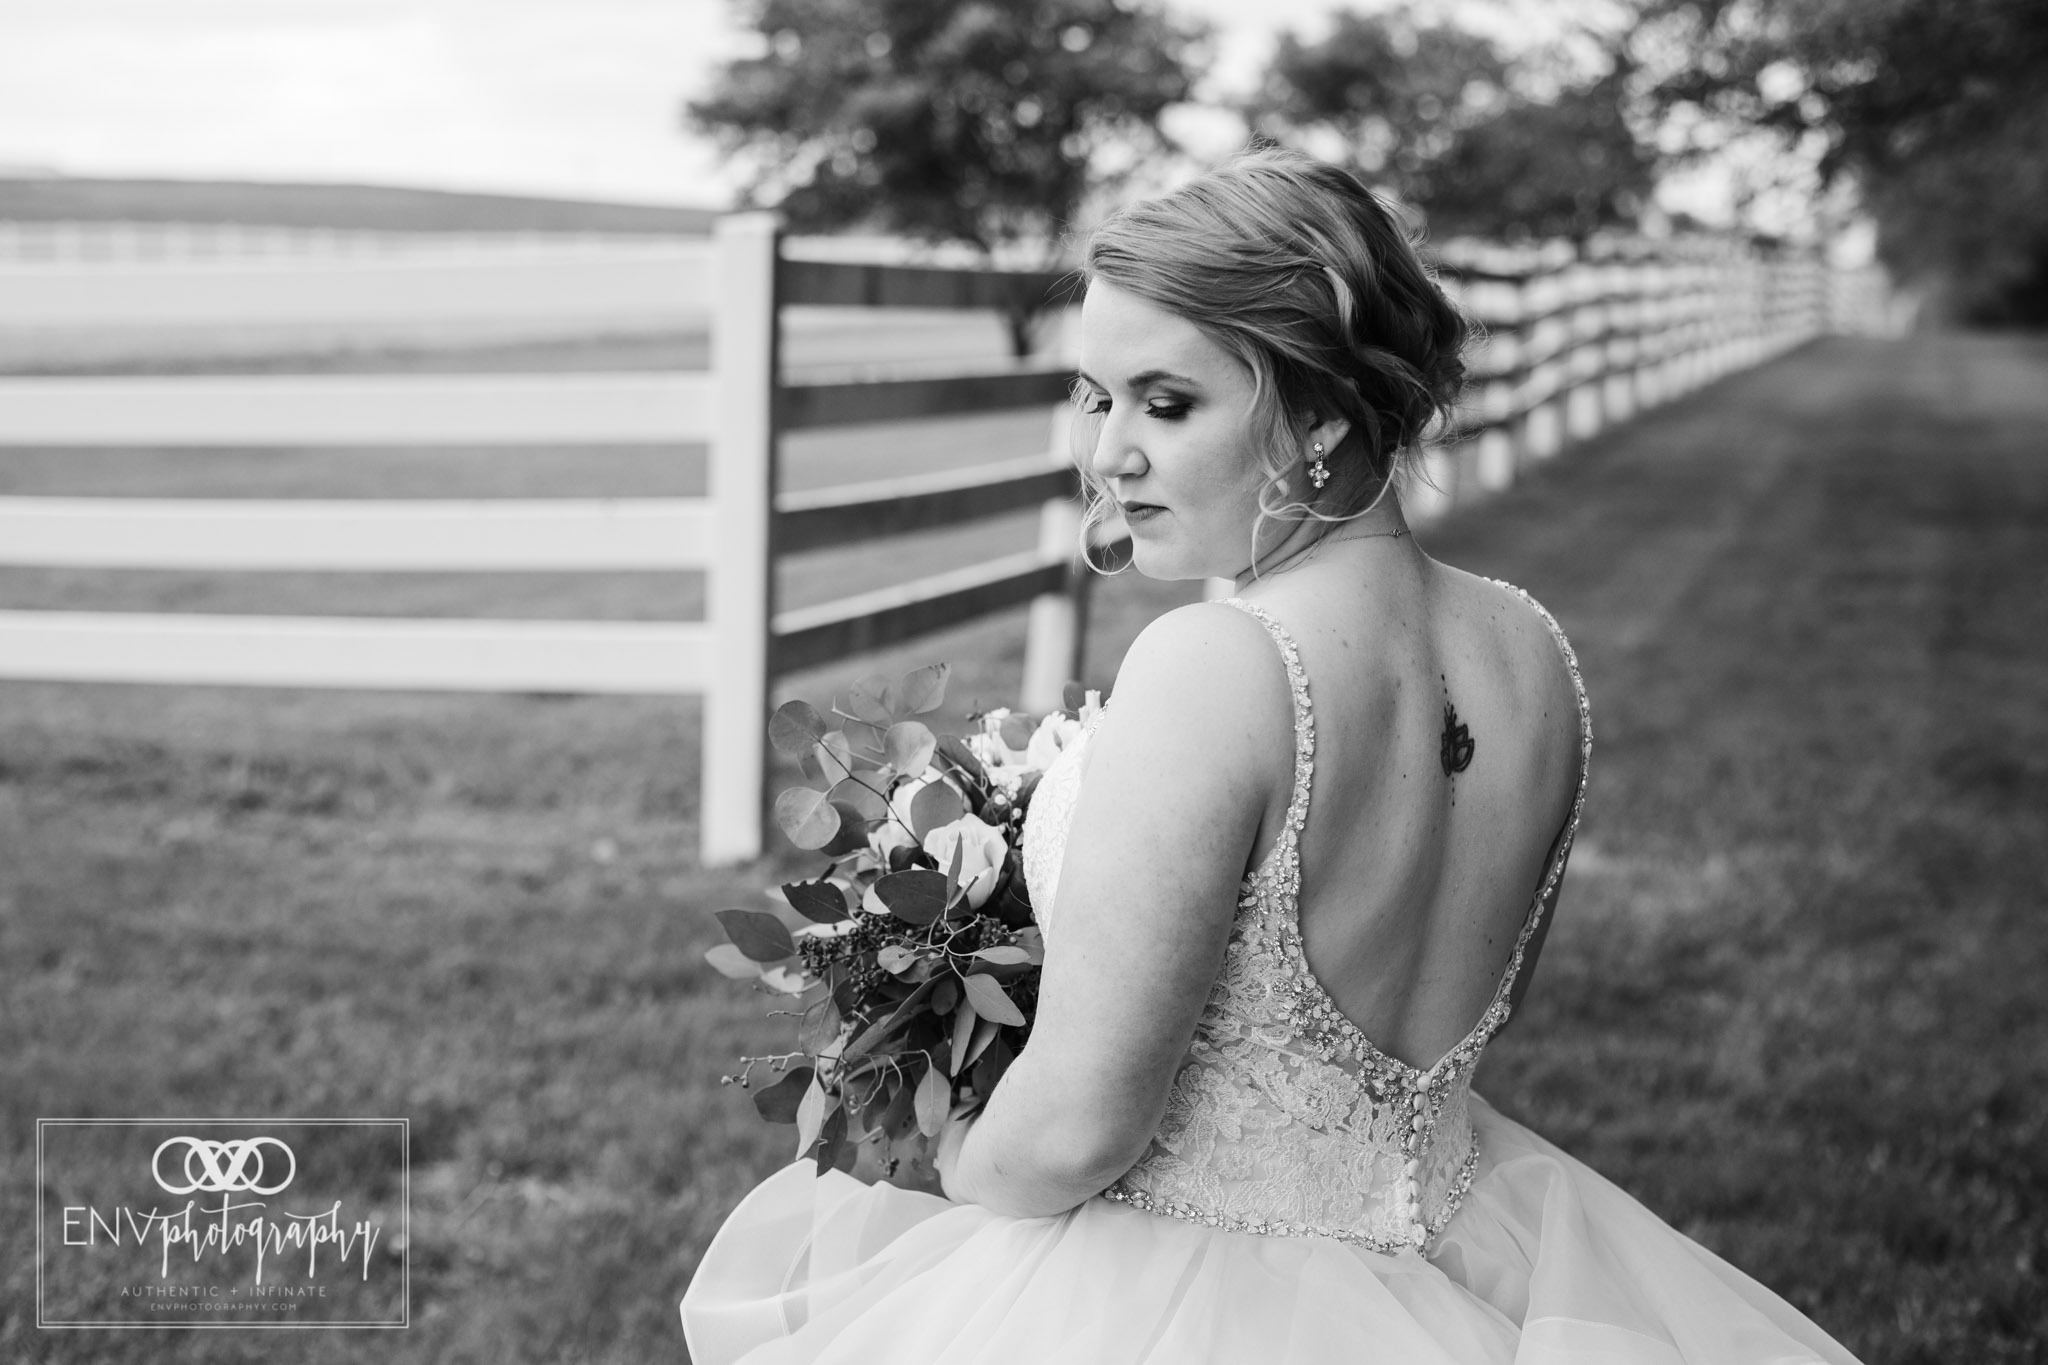 mount vernon columbus ohio irongate equestrian center wedding photographer (41).jpg